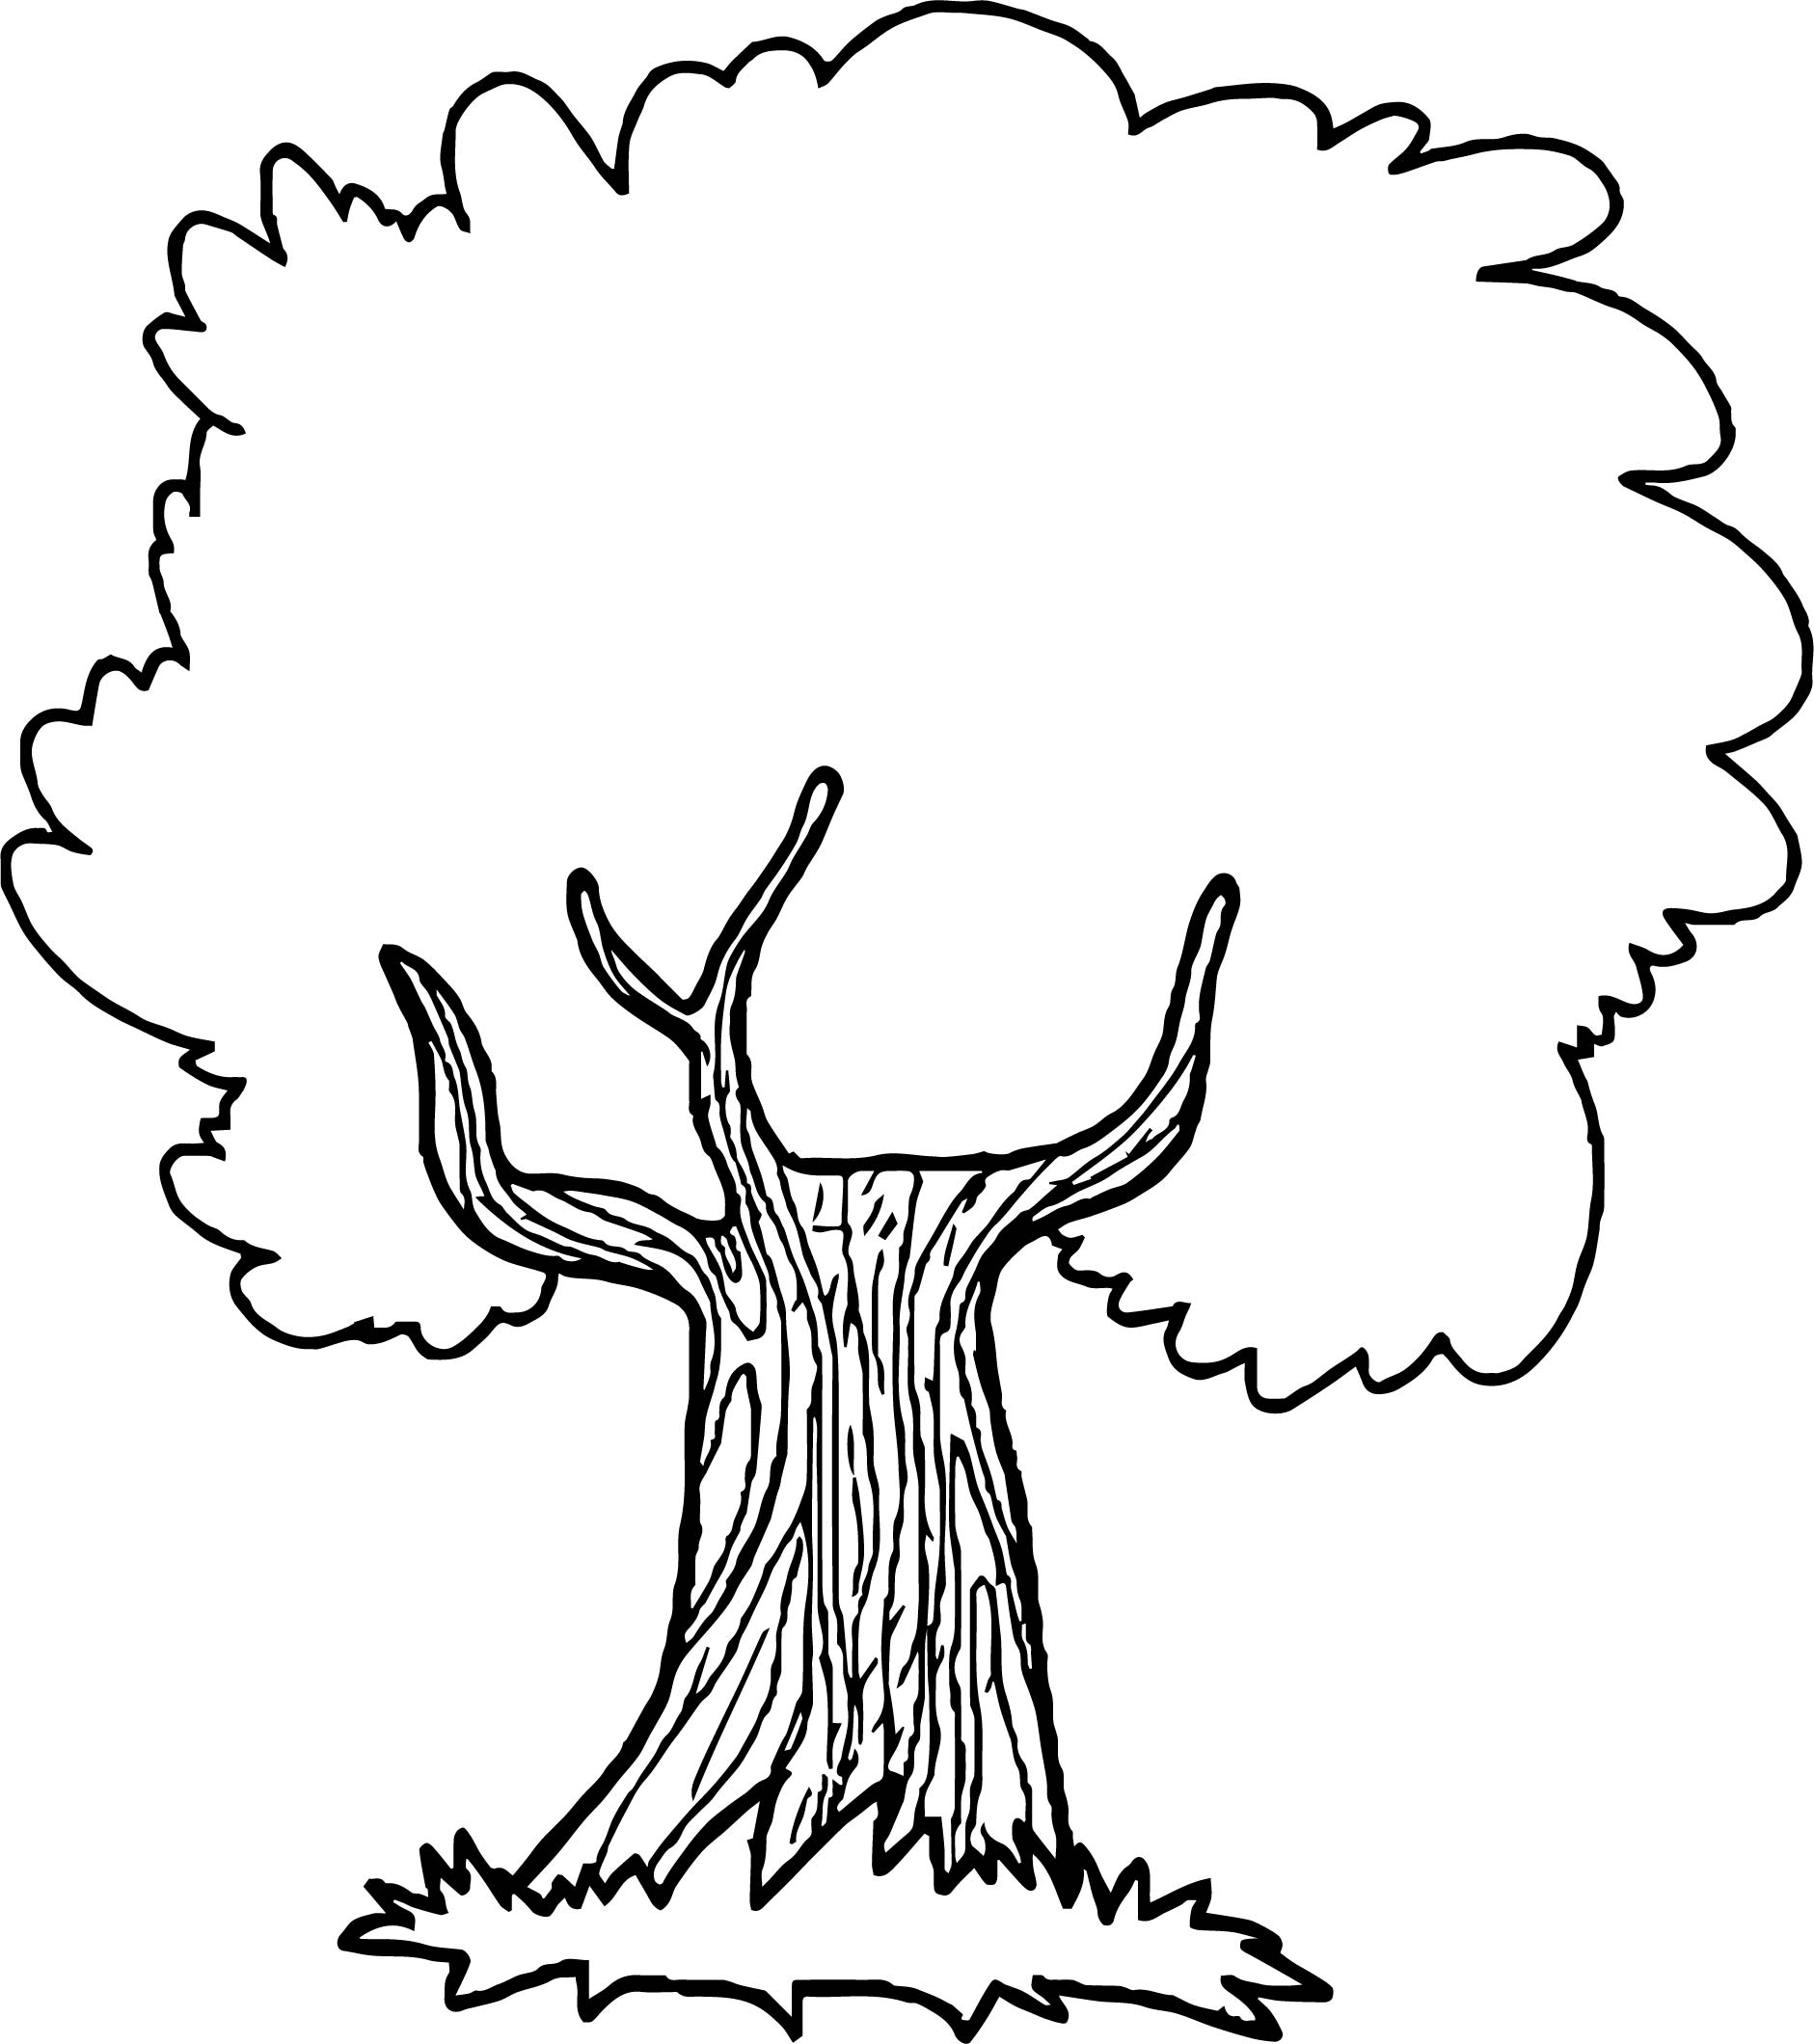 Nature Apple Tree Coloring Page For Kids Printable Free Too Much Apple Tree Coloring Page